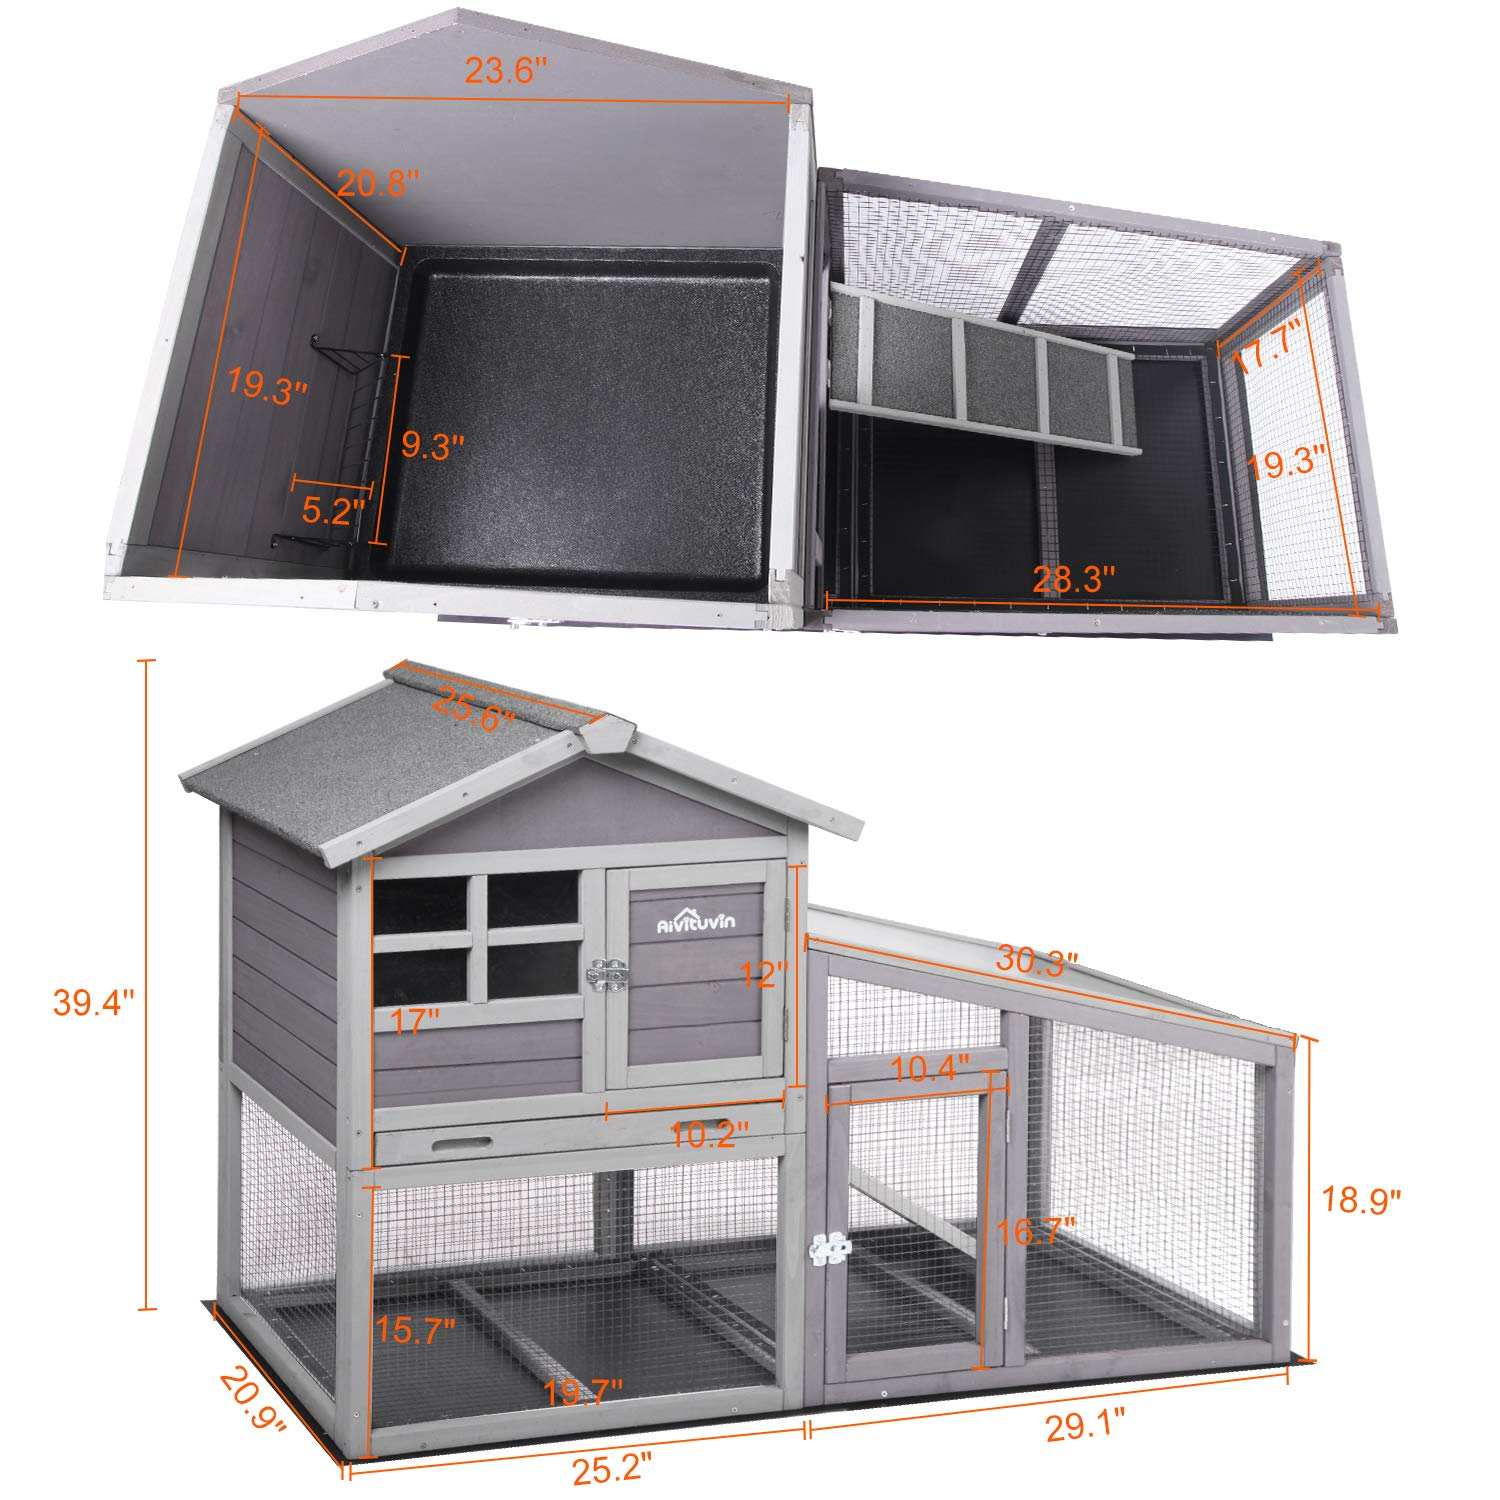 Aivituvin Chicken Coop Indoor and Outdoor,Rabbit Hutch with Removable Bottom Wire Mesh & PVC Layer,Deeper No LeakageTray,Wooden Hen House with Nesting Box,UV Panel by Aivituvin (Image #4)